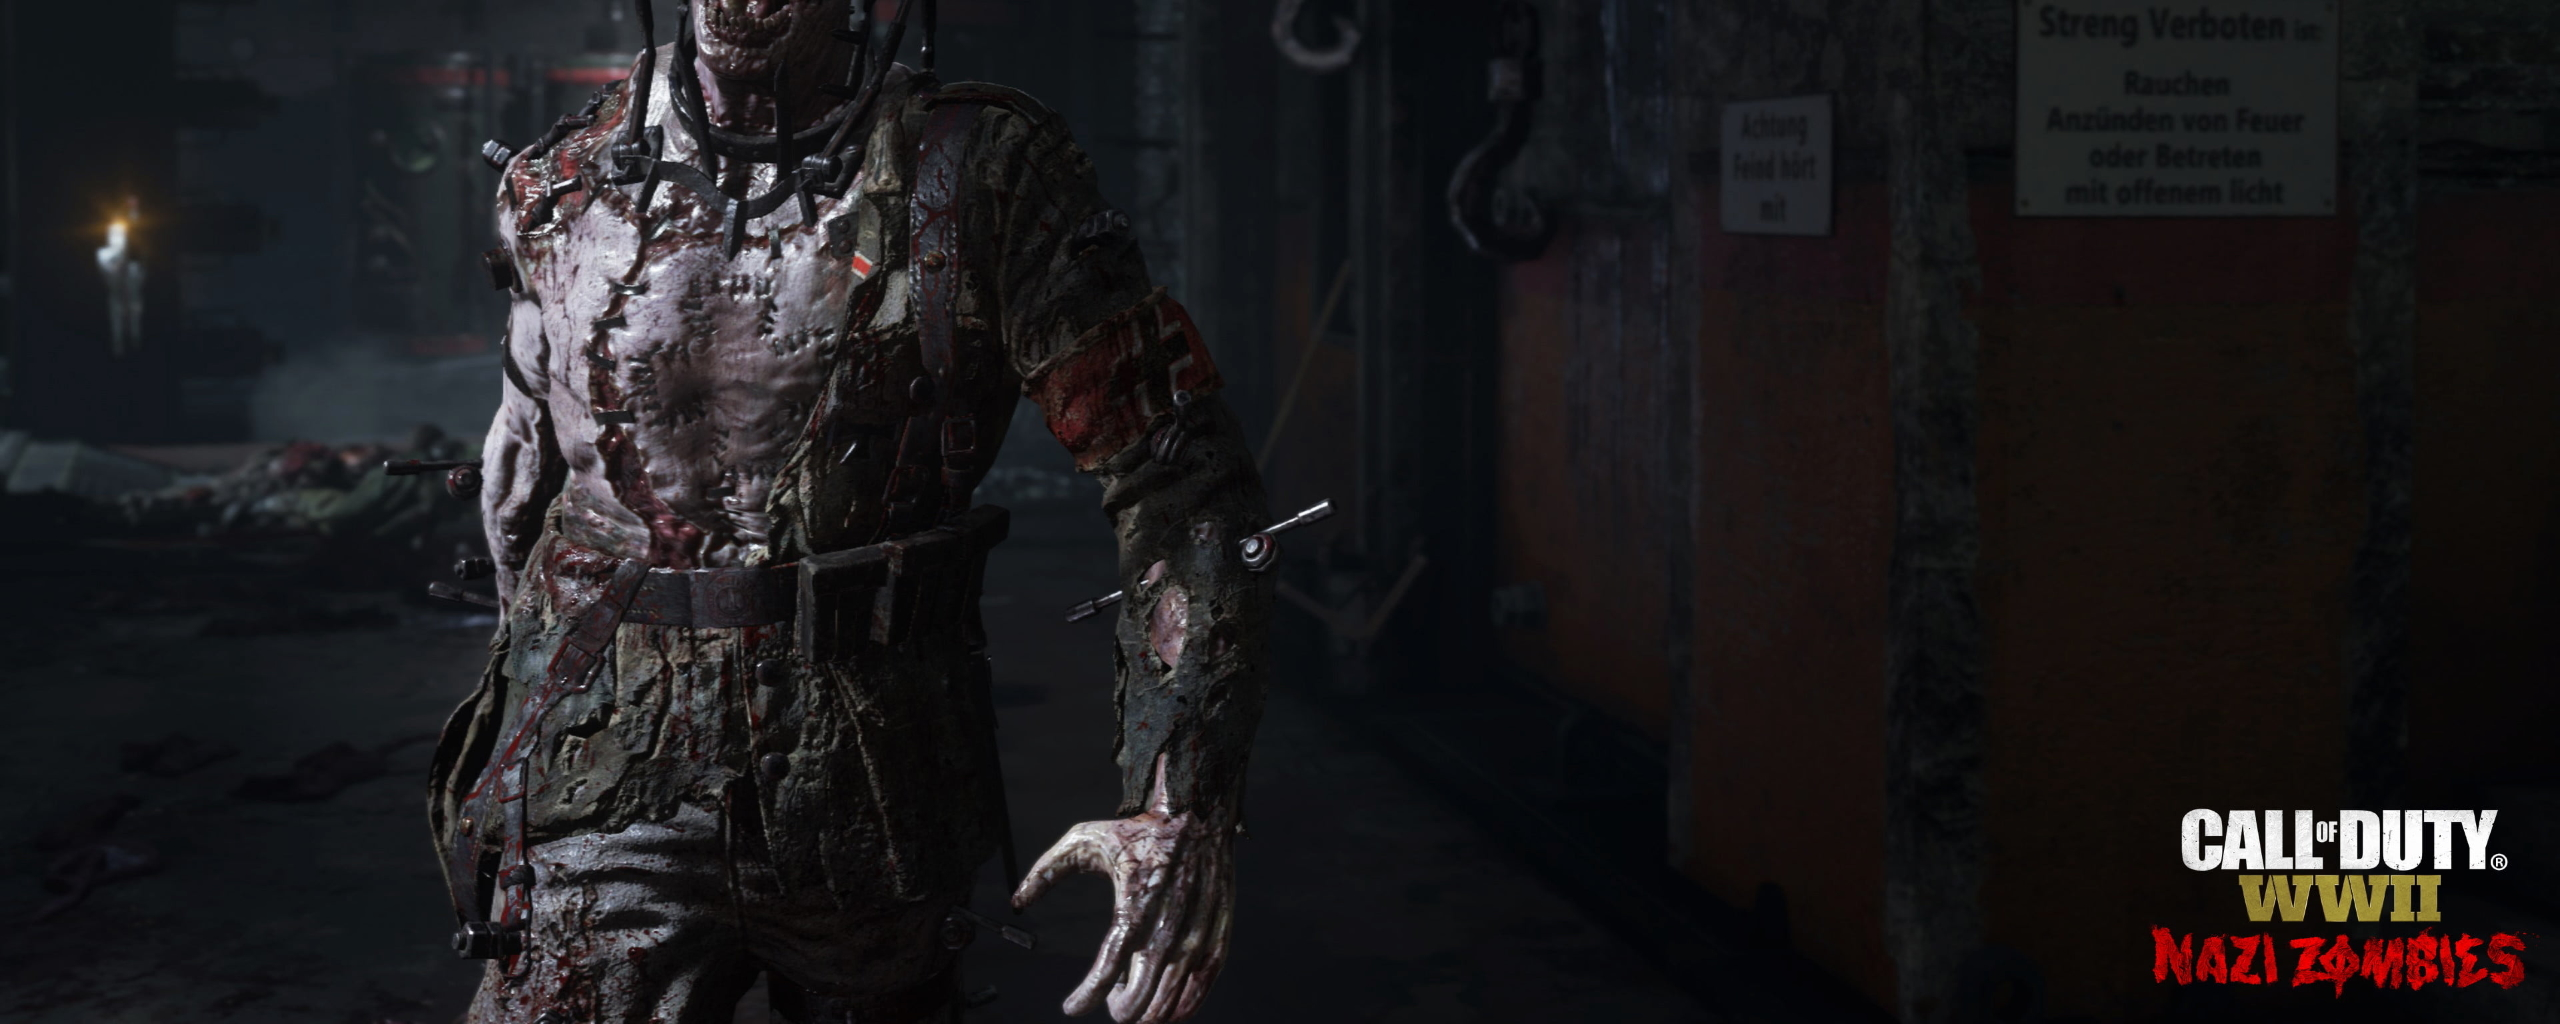 Call Of Duty Zombies Wallpapers: Call Of Duty Wwii Nazi Zombies Gameplay, HD 4K Wallpaper